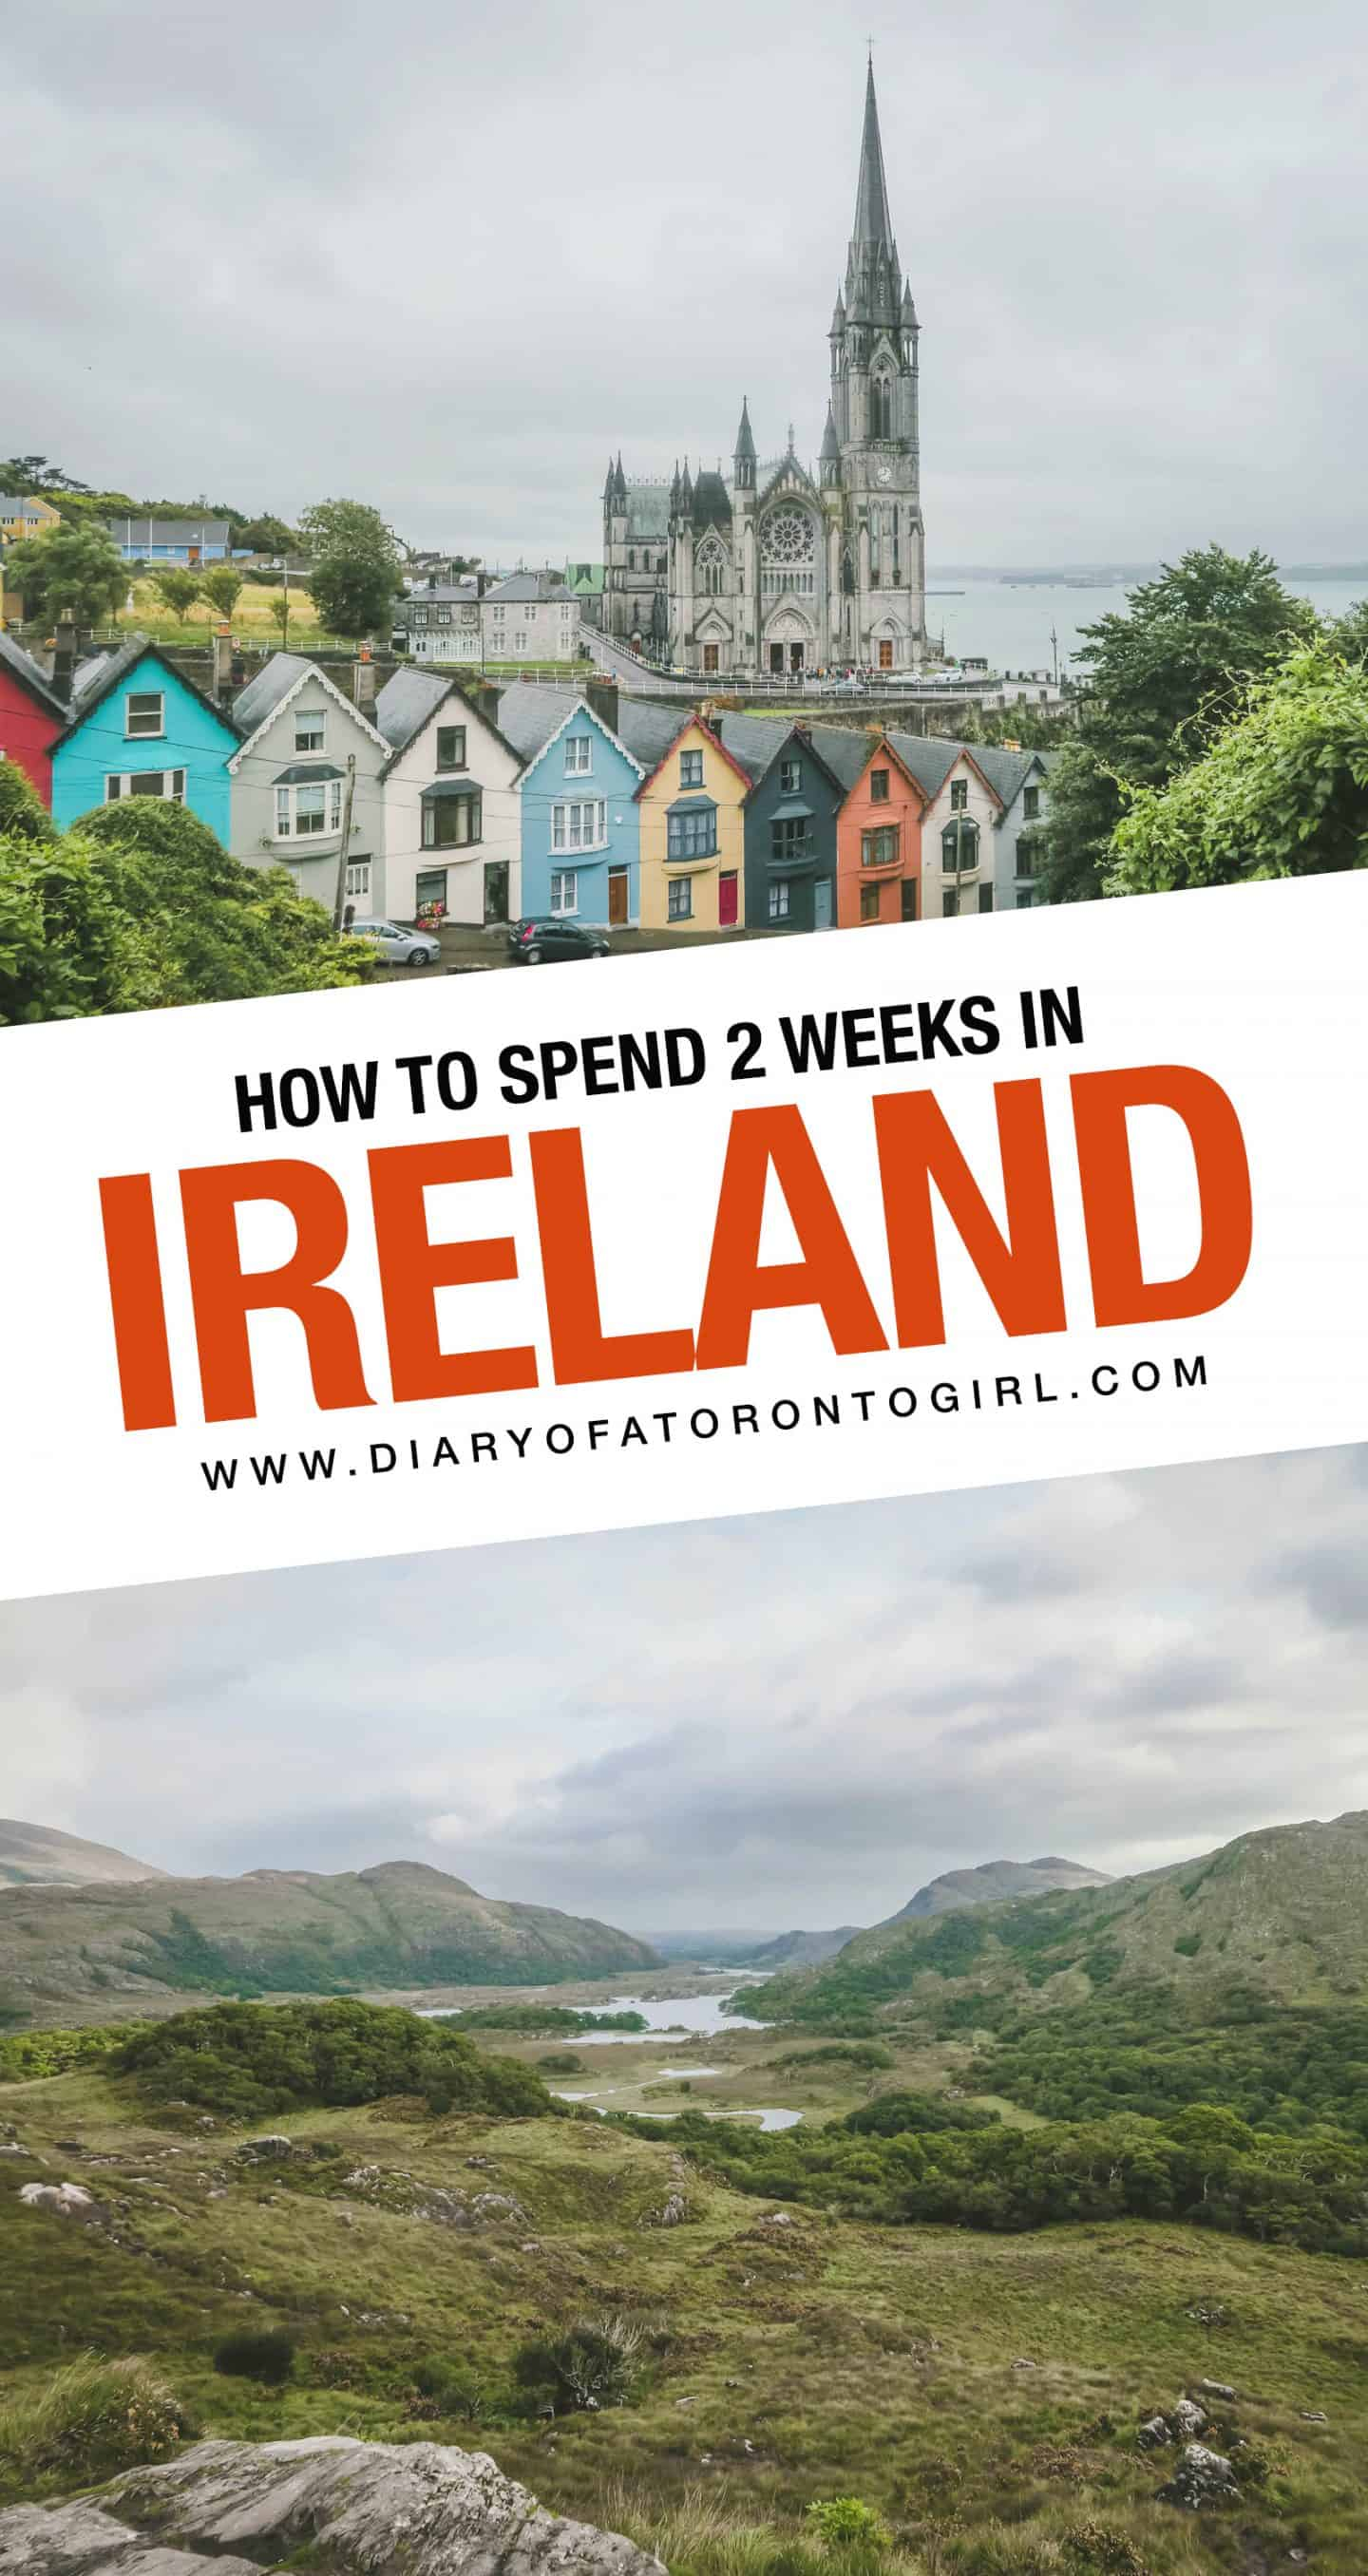 Planning a visit to Ireland? Here's a detailed look at our 2 week Ireland road trip itinerary, including all of the attractions we saw and everywhere we went!